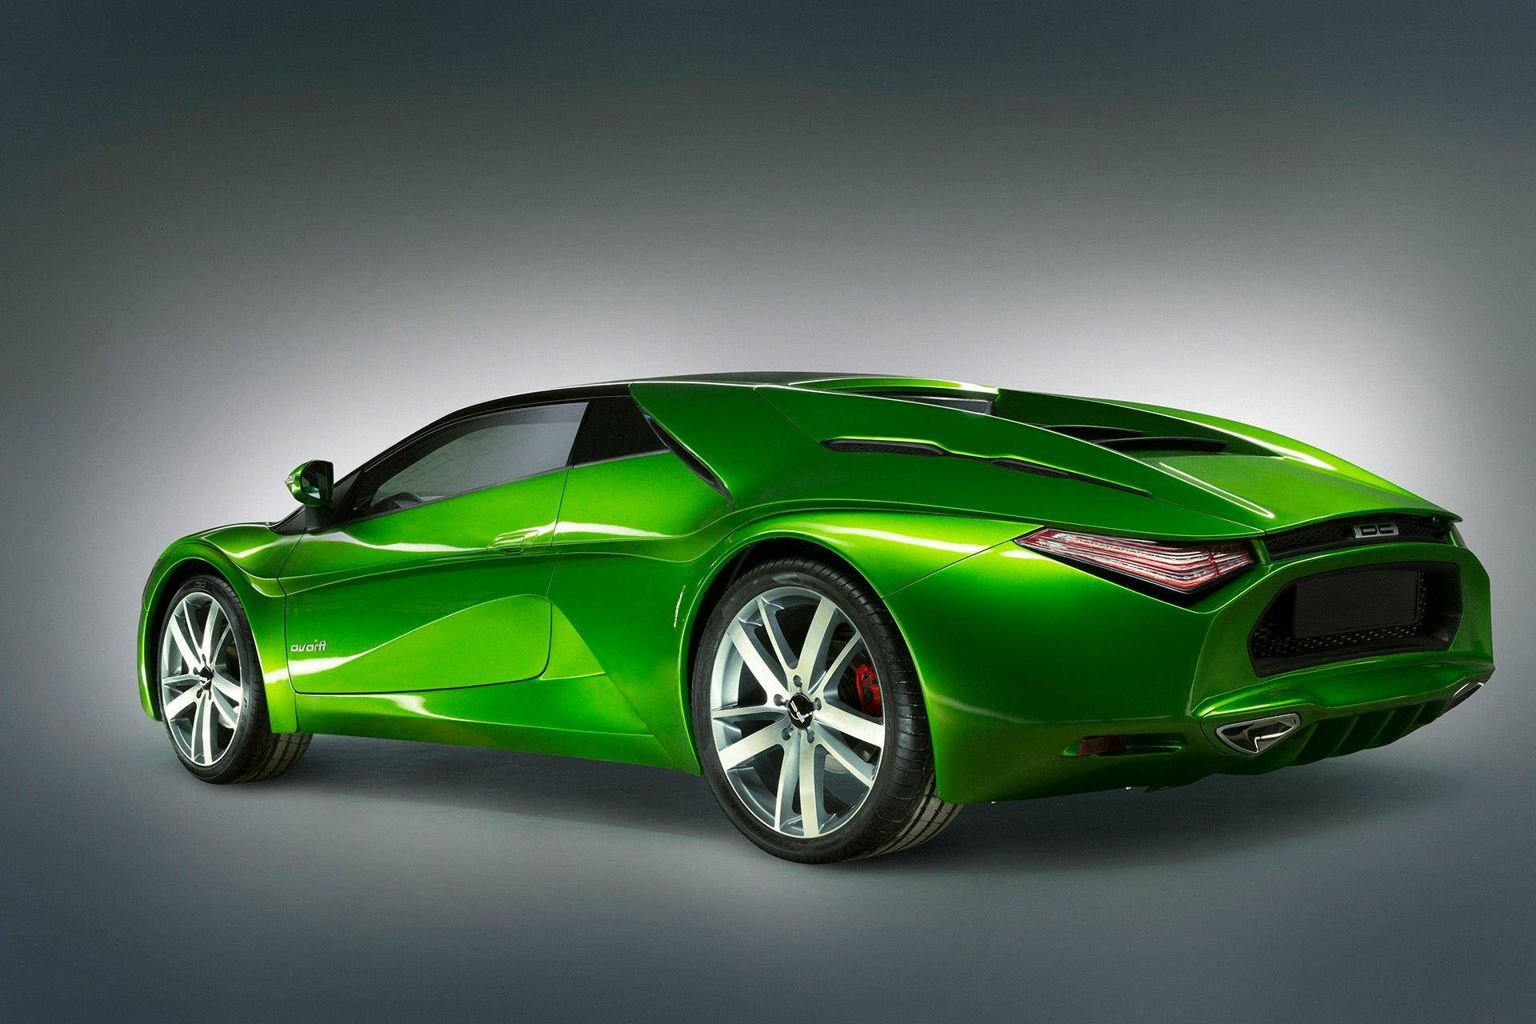 DC Avanti, Indian Supercar Features And Price